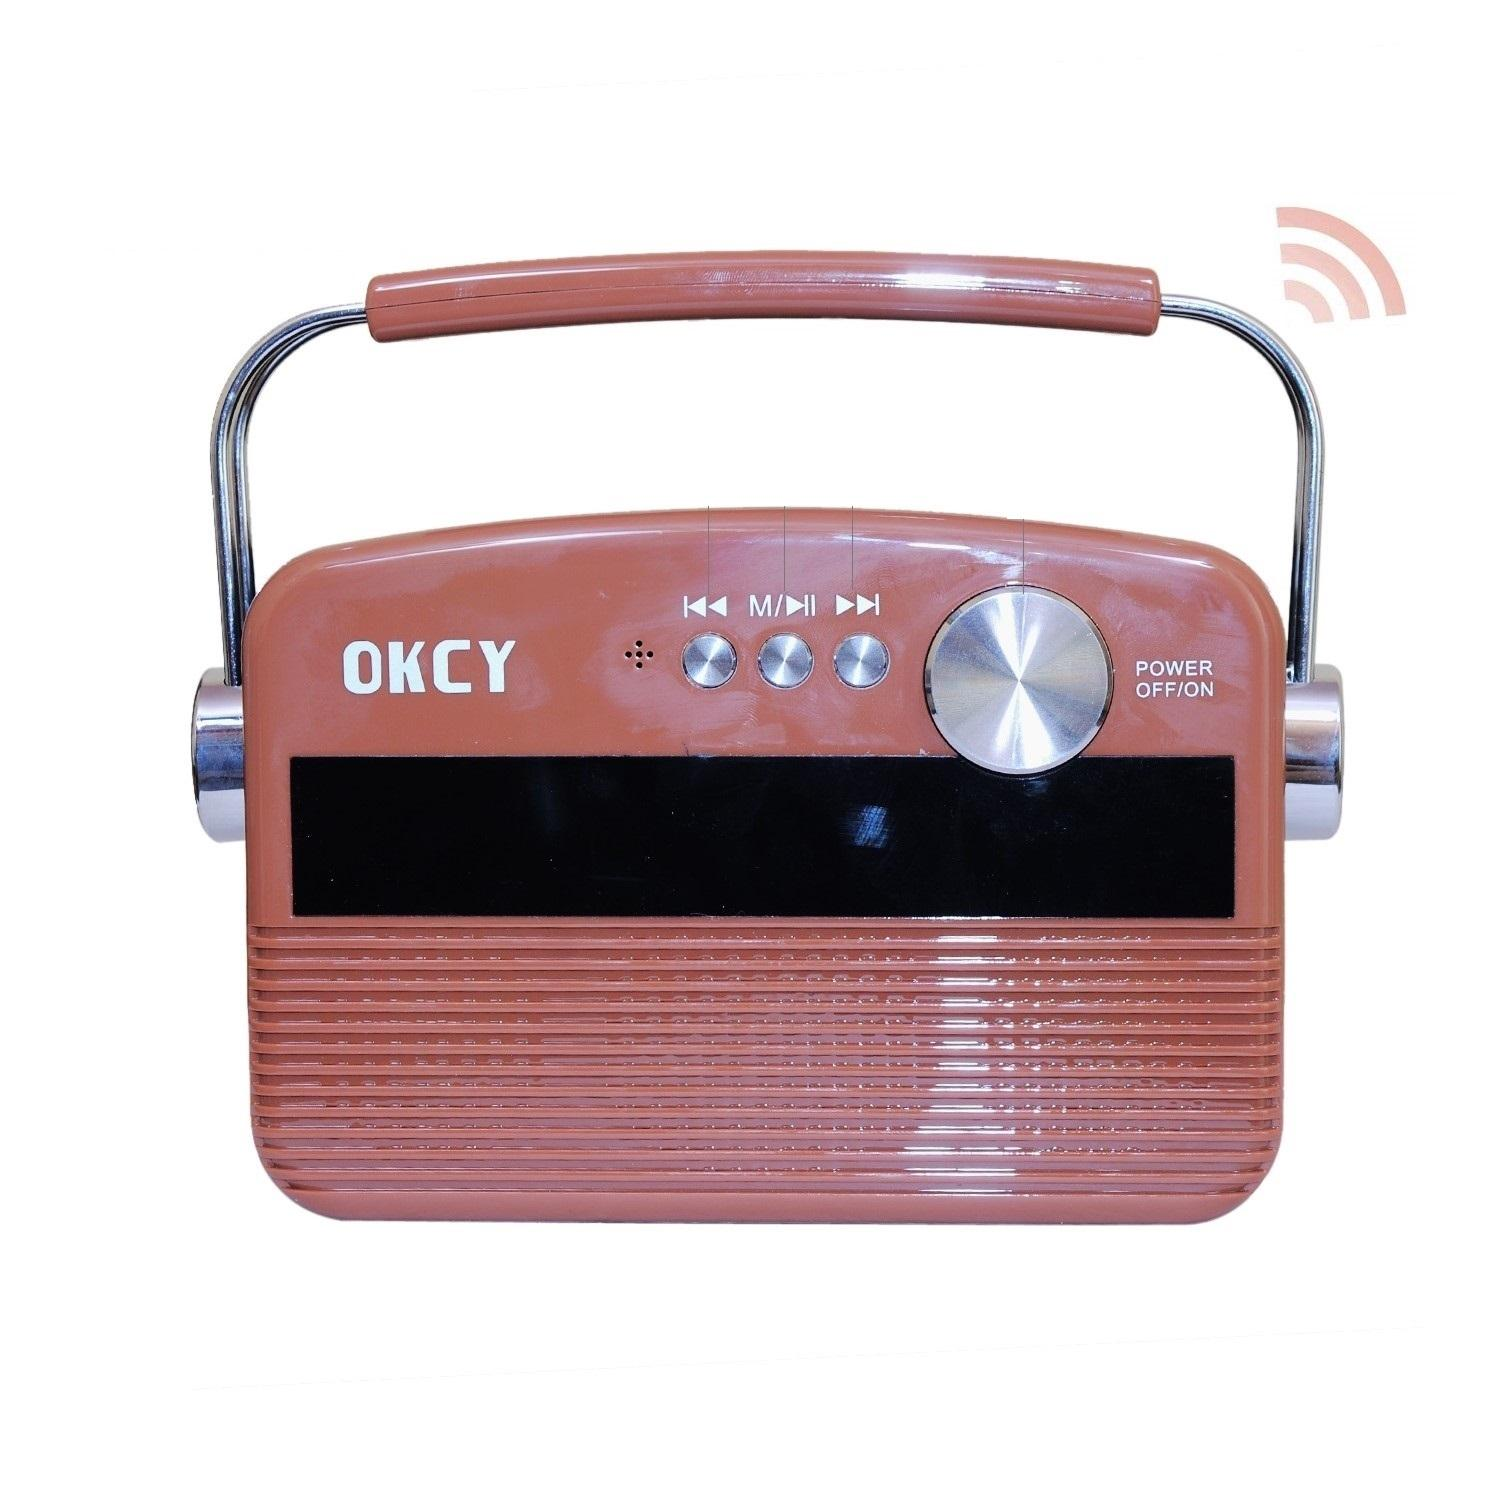 OKCY 2 0 Portable Digital Music Player (Code: C619192)